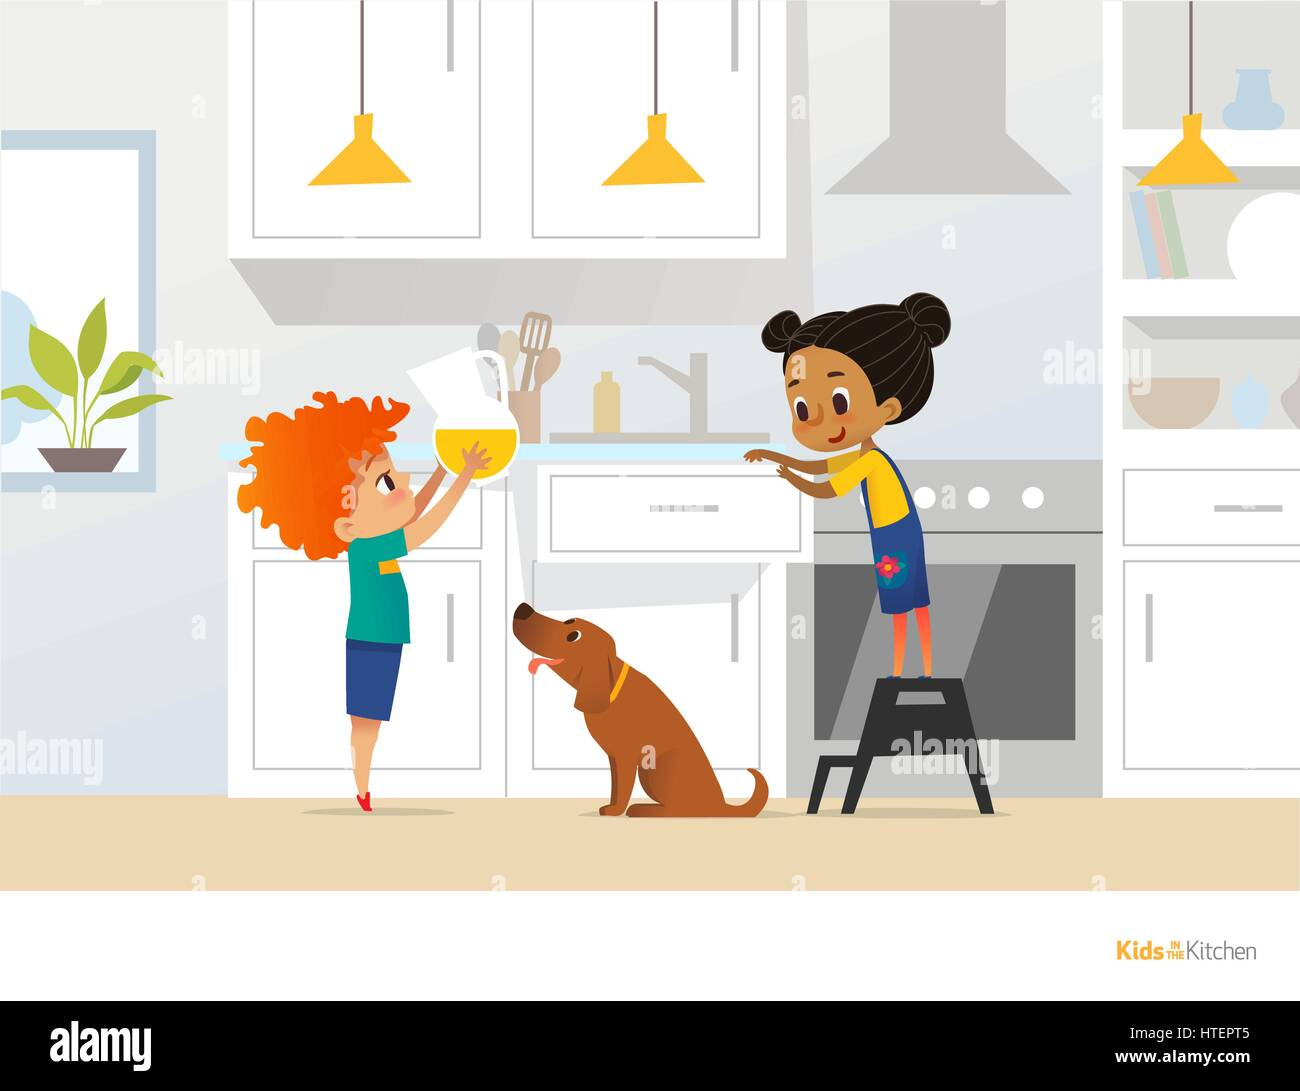 Children Cooking Food In Kitchen Red Head Boy Holding Pitcher With Drink Girl Apron Standing By Stove And Cute Pet Dog Home Alone Concept